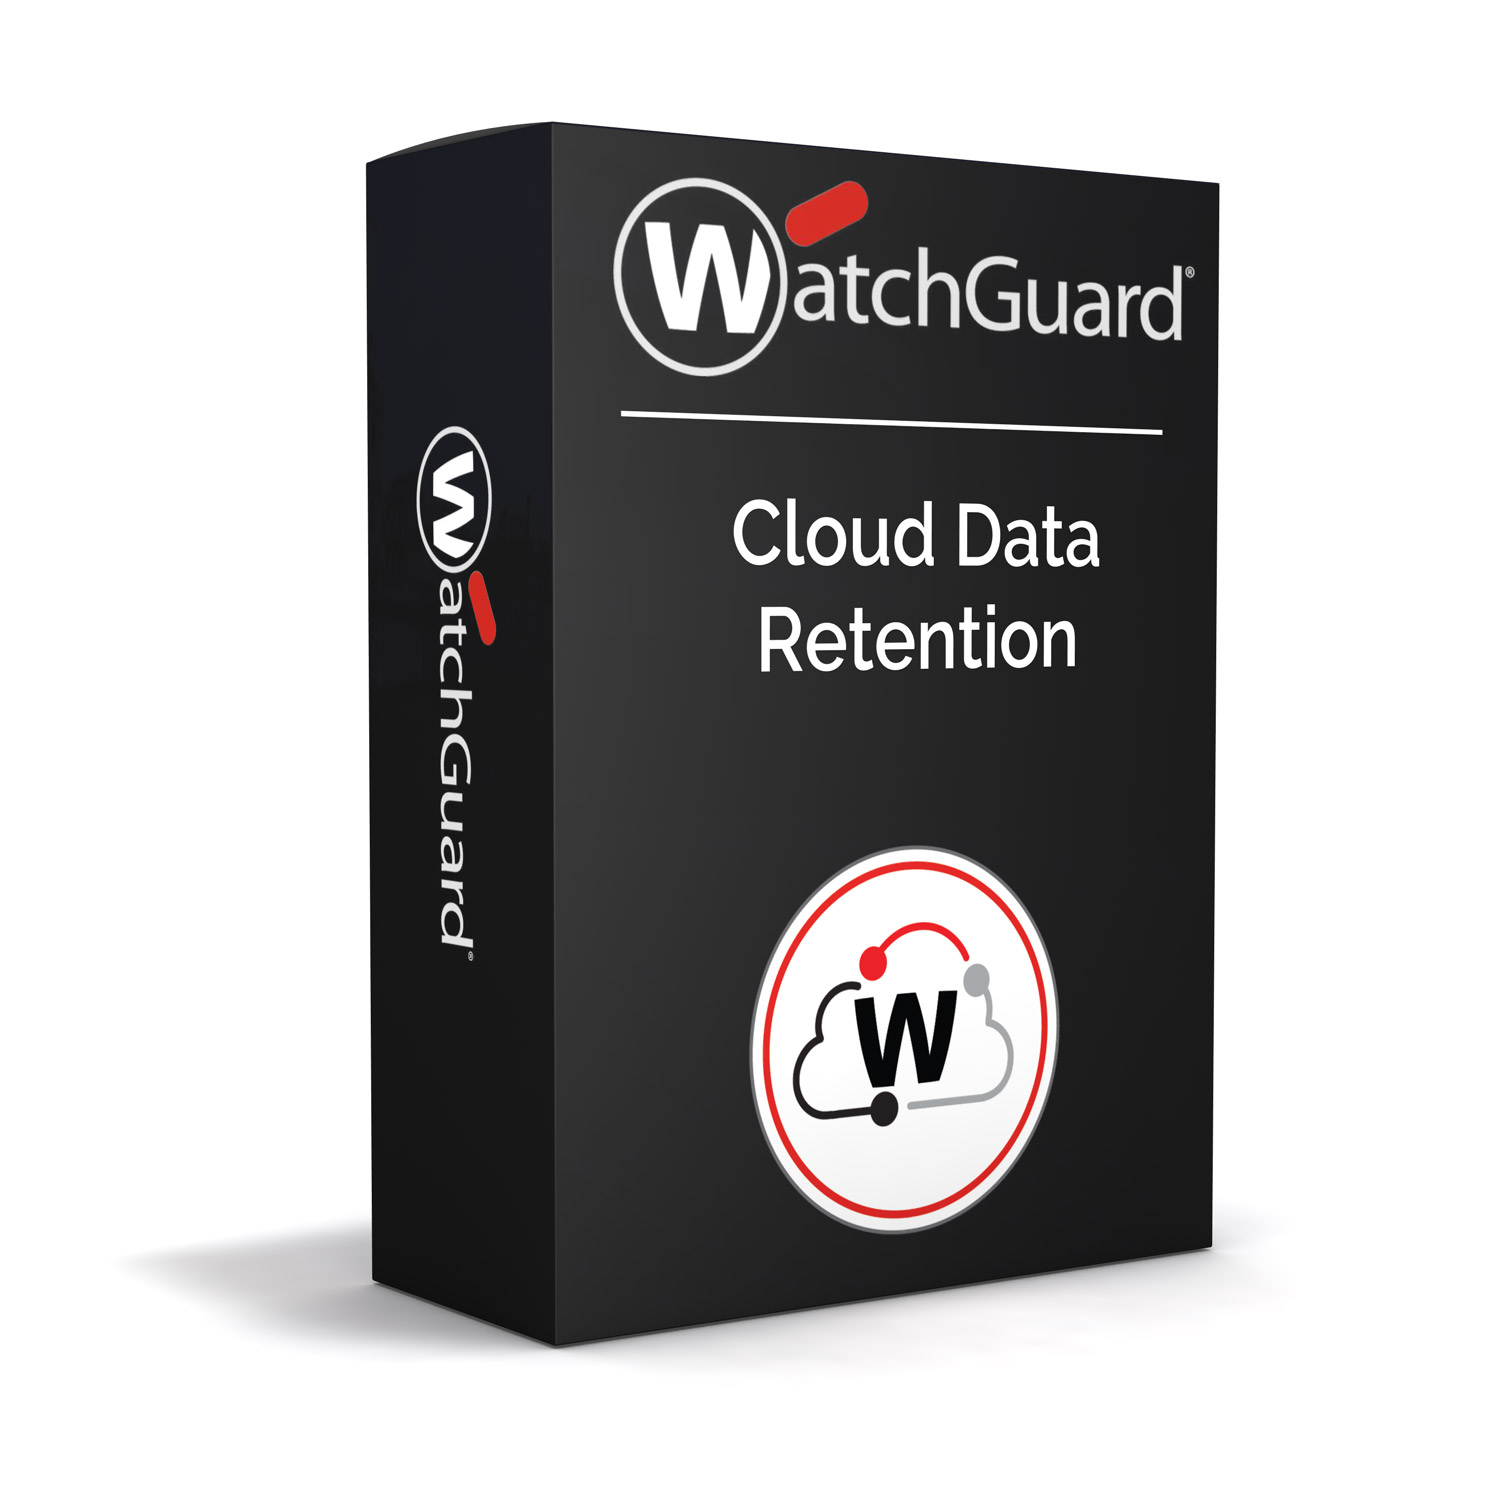 WatchGuard Cloud 1-month data retention for T70 - 1-yr